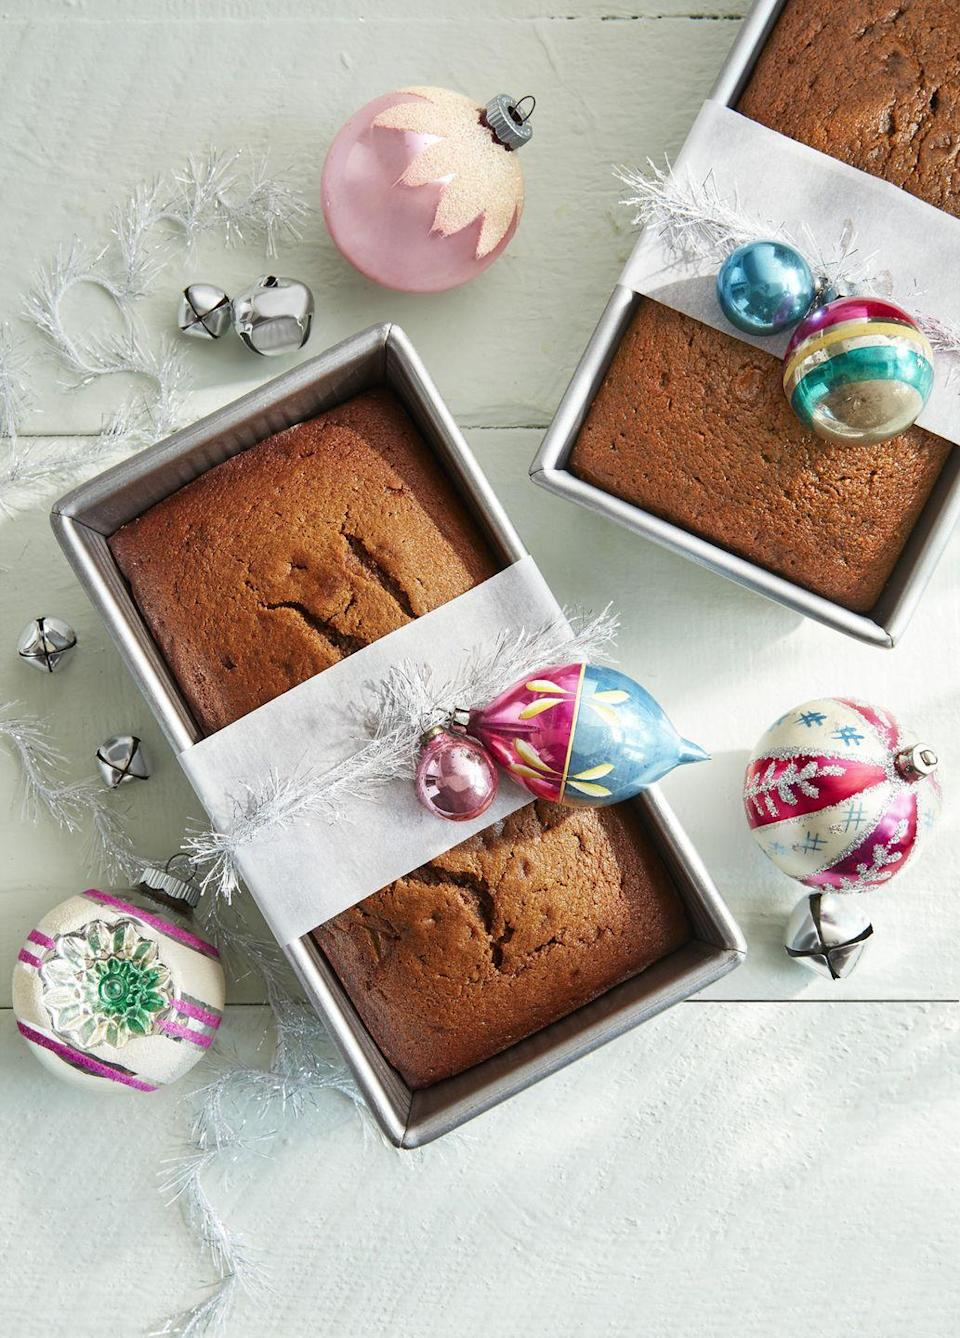 """<p>Though it makes a great holiday gift, this sweet, complex-tasting gingerbread loaf is also good to just keep on hand. Eat a slice with a cup of coffee. </p><p><strong><a href=""""https://www.countryliving.com/food-drinks/a25439942/gingerbread-pear-loaf-recipe/"""" rel=""""nofollow noopener"""" target=""""_blank"""" data-ylk=""""slk:Get the recipe"""" class=""""link rapid-noclick-resp"""">Get the recipe</a>.</strong></p><p><strong><a class=""""link rapid-noclick-resp"""" href=""""https://www.amazon.com/USA-Pan-1140LF-Bakeware-Aluminized/dp/B0029JQEIC/?tag=syn-yahoo-20&ascsubtag=%5Bartid%7C10050.g.32944821%5Bsrc%7Cyahoo-us"""" rel=""""nofollow noopener"""" target=""""_blank"""" data-ylk=""""slk:SHOP BAKING PANS"""">SHOP BAKING PANS</a><br></strong></p>"""